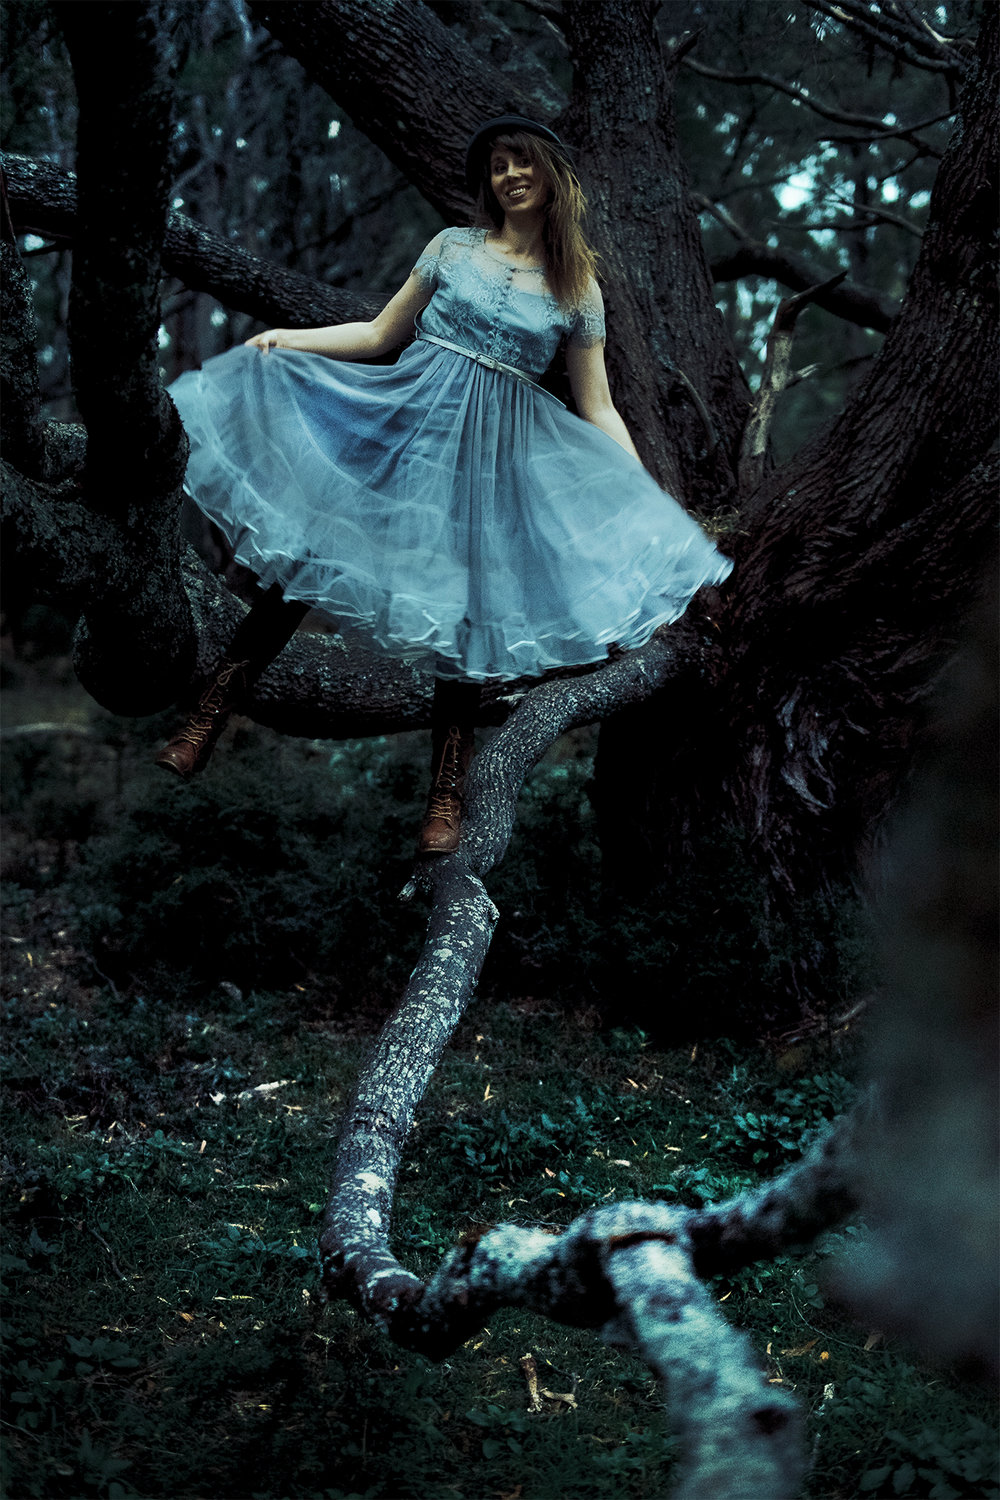 A girl in a tree who is Alice